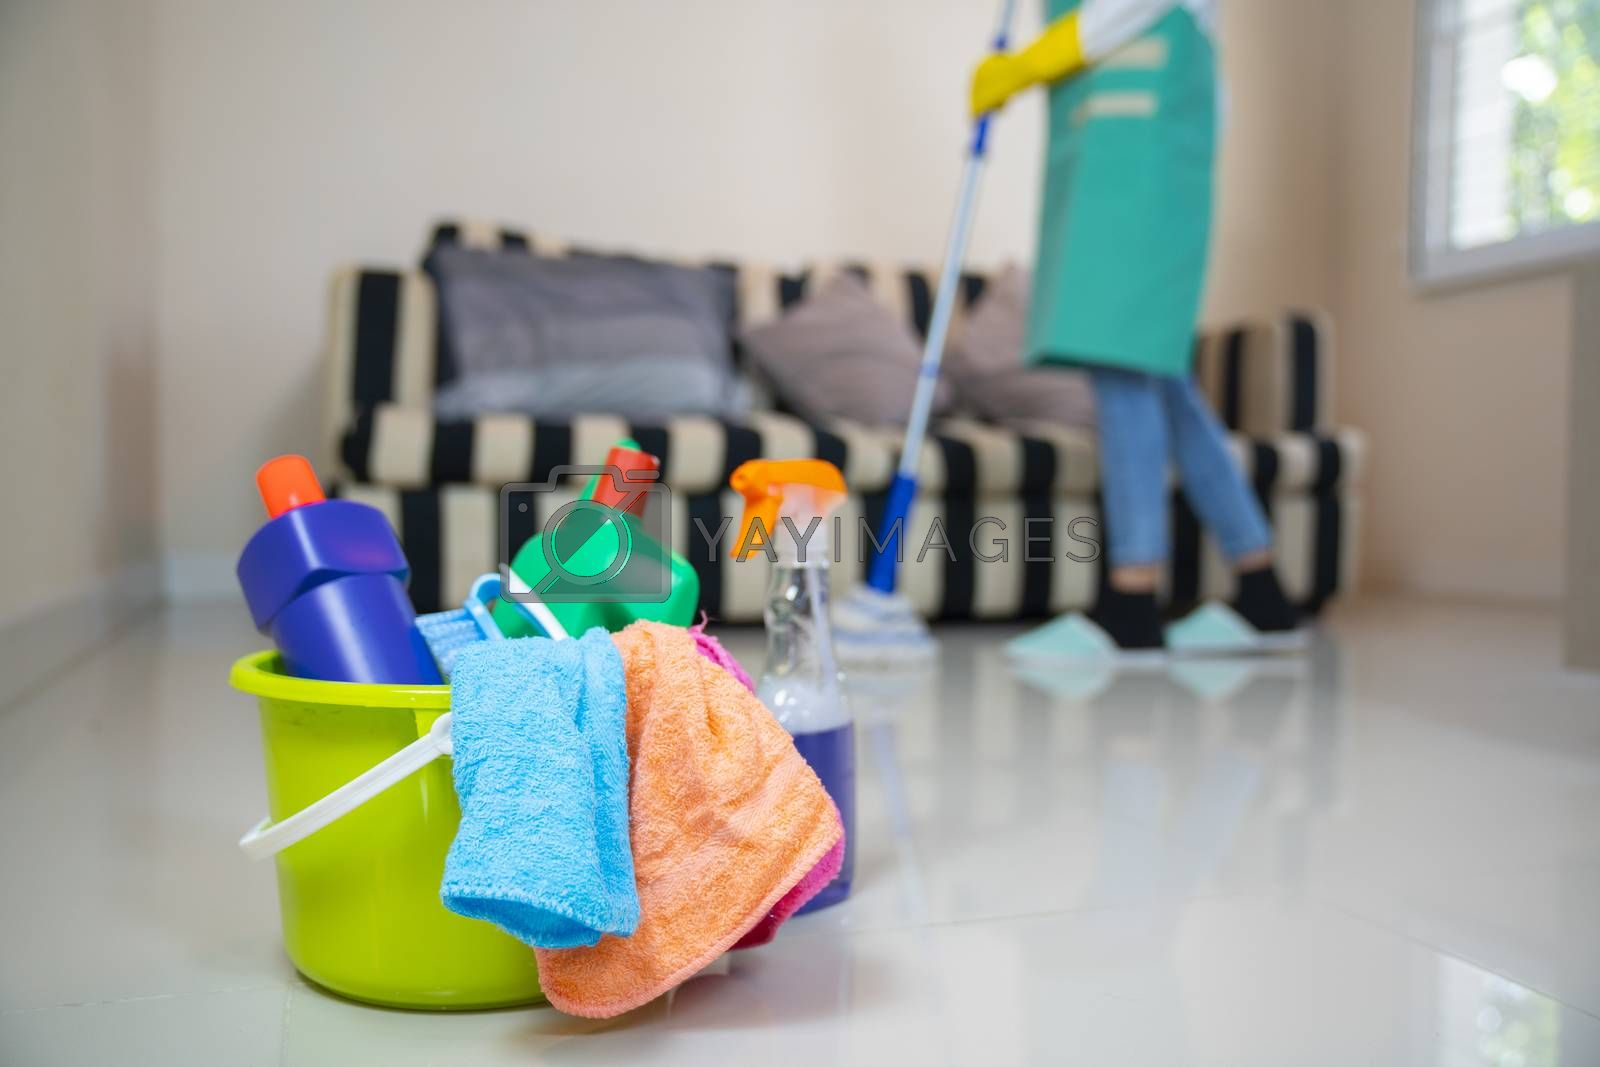 Cleaning service. Sponges, chemicals and mop